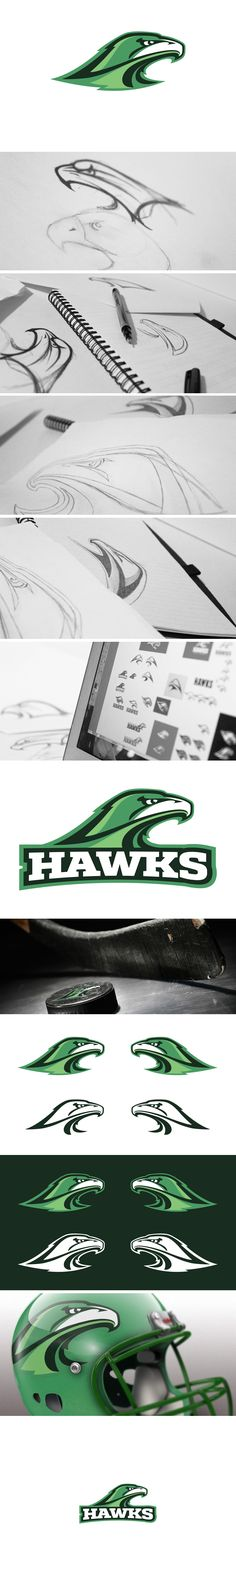 Hawks Logo Concept on Behance